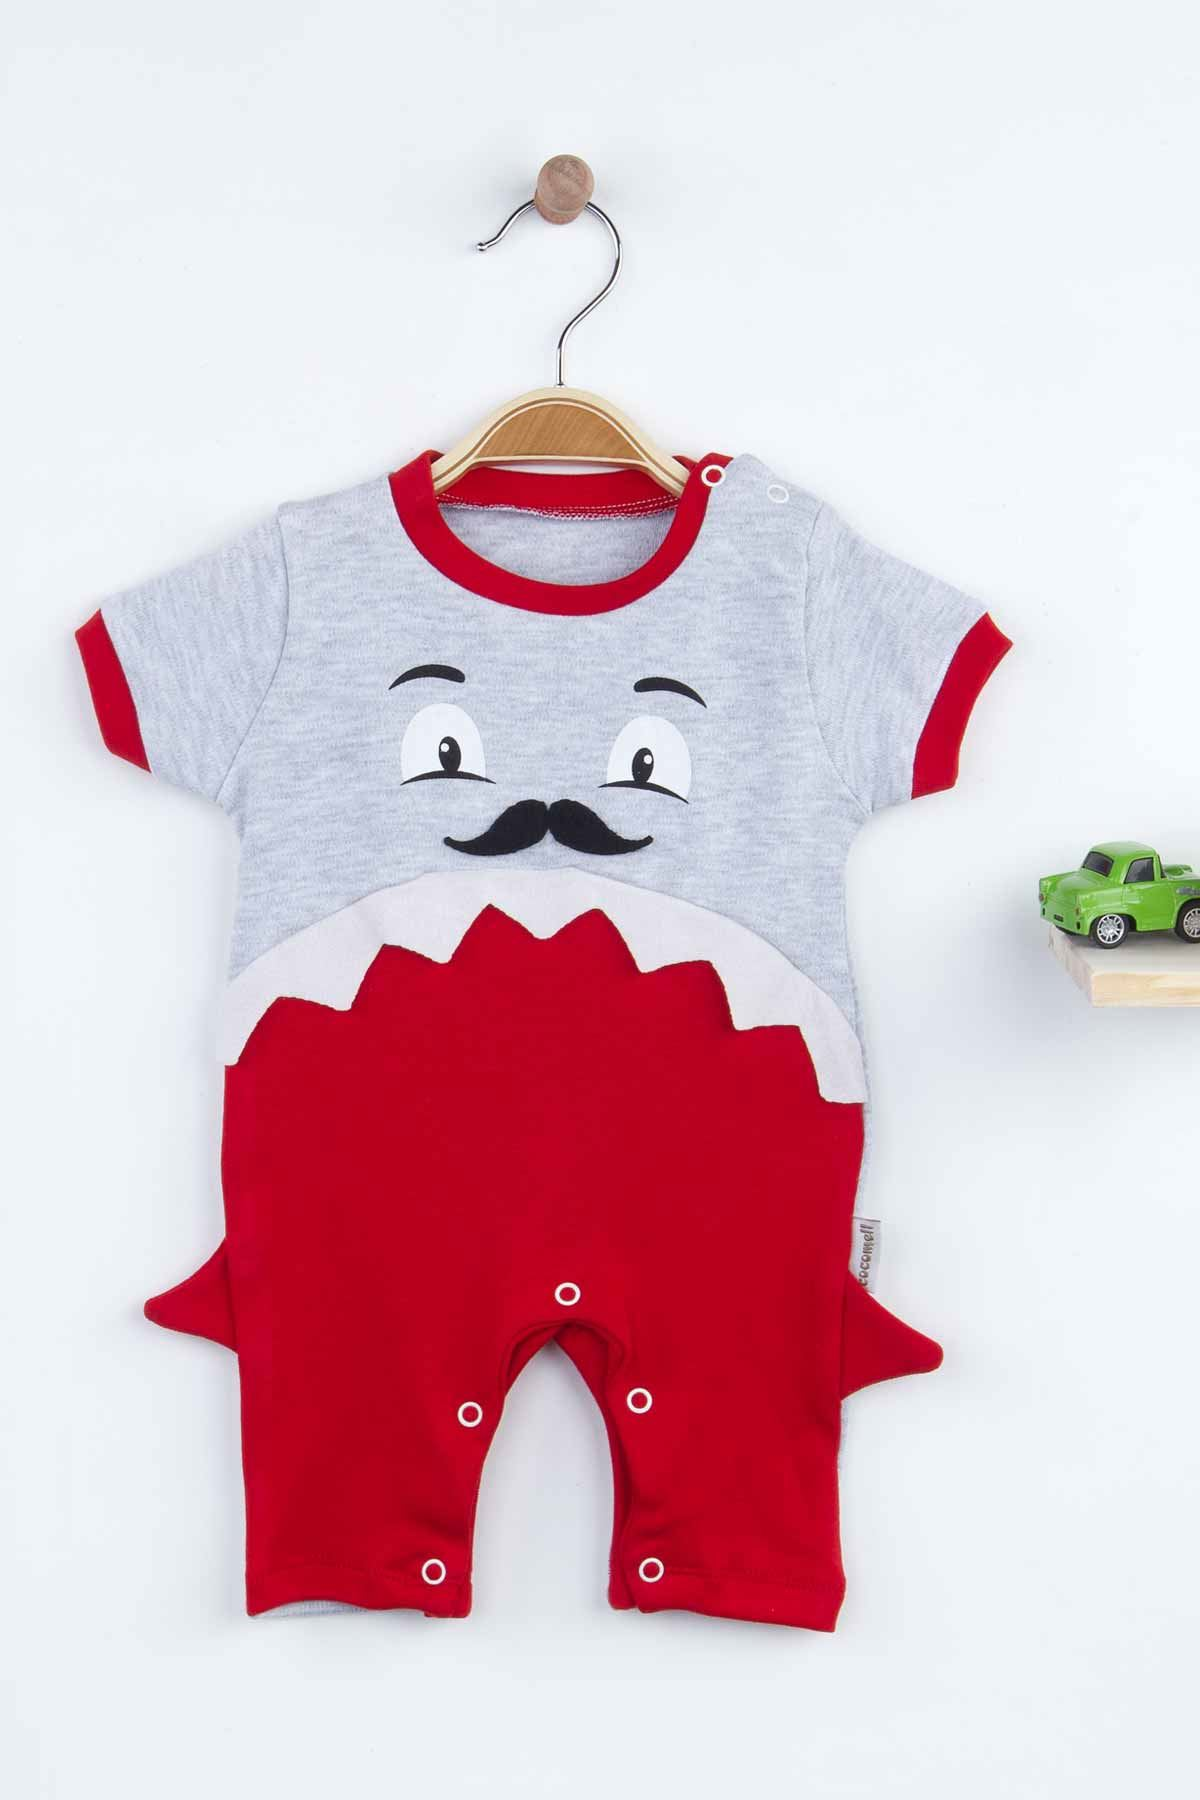 Red Summer Baby Boy Rompers Fashion 2021 New Season Style Babies Clothes Outfit Cotton Comfortable Underwear for Boys Baby Models